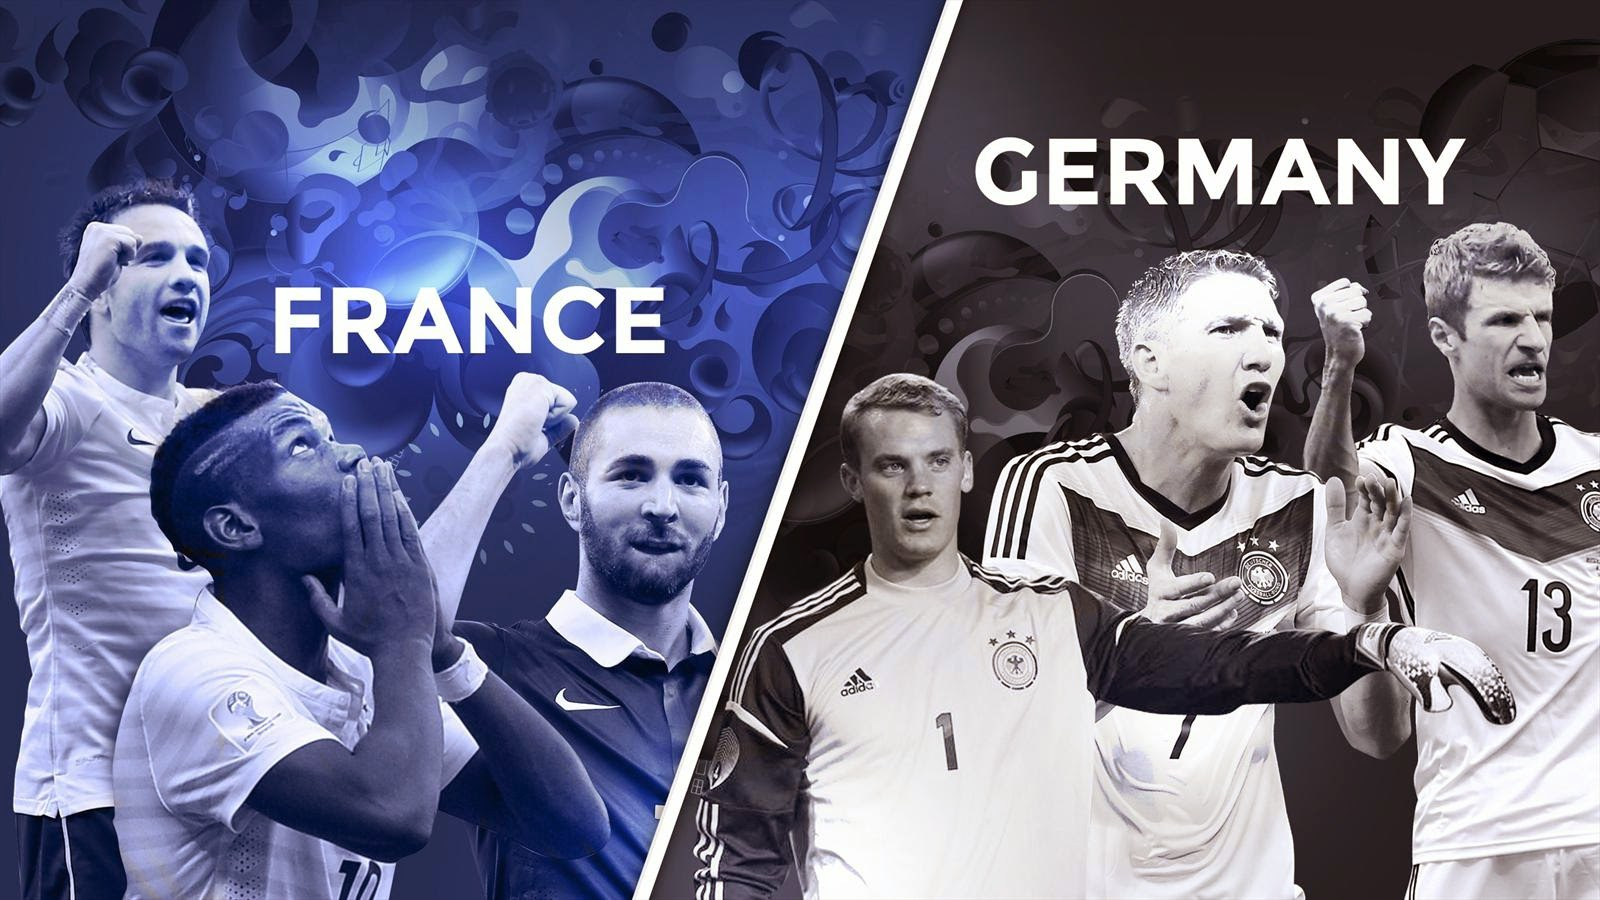 France vs Germany HD Wallpapers